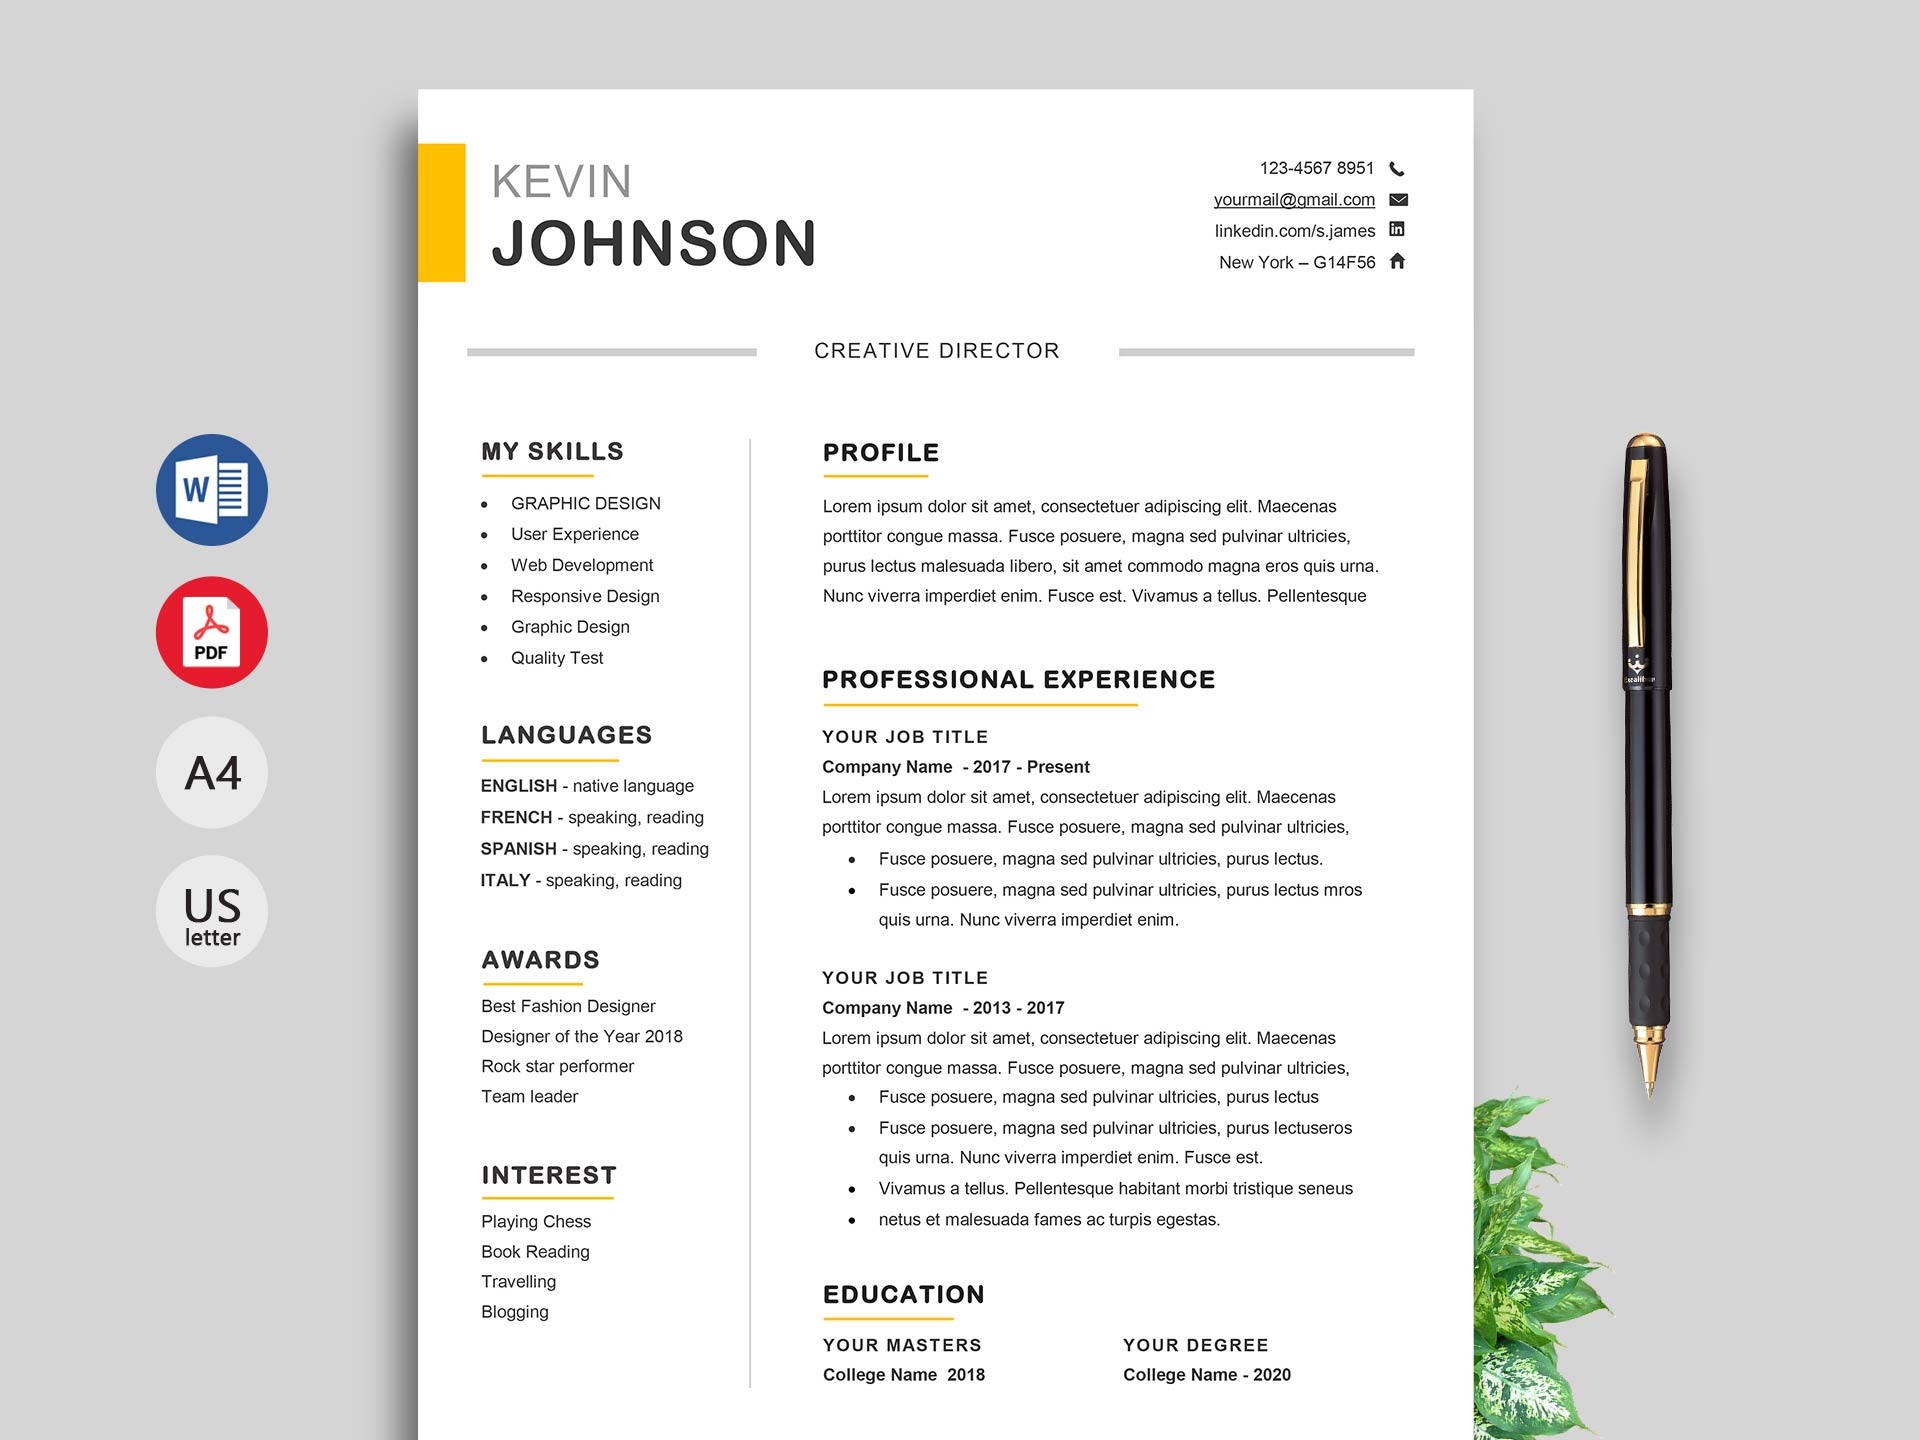 free simple resume cv templates word format resumekraft indian fashion designer winner Resume Indian Fashion Designer Resume